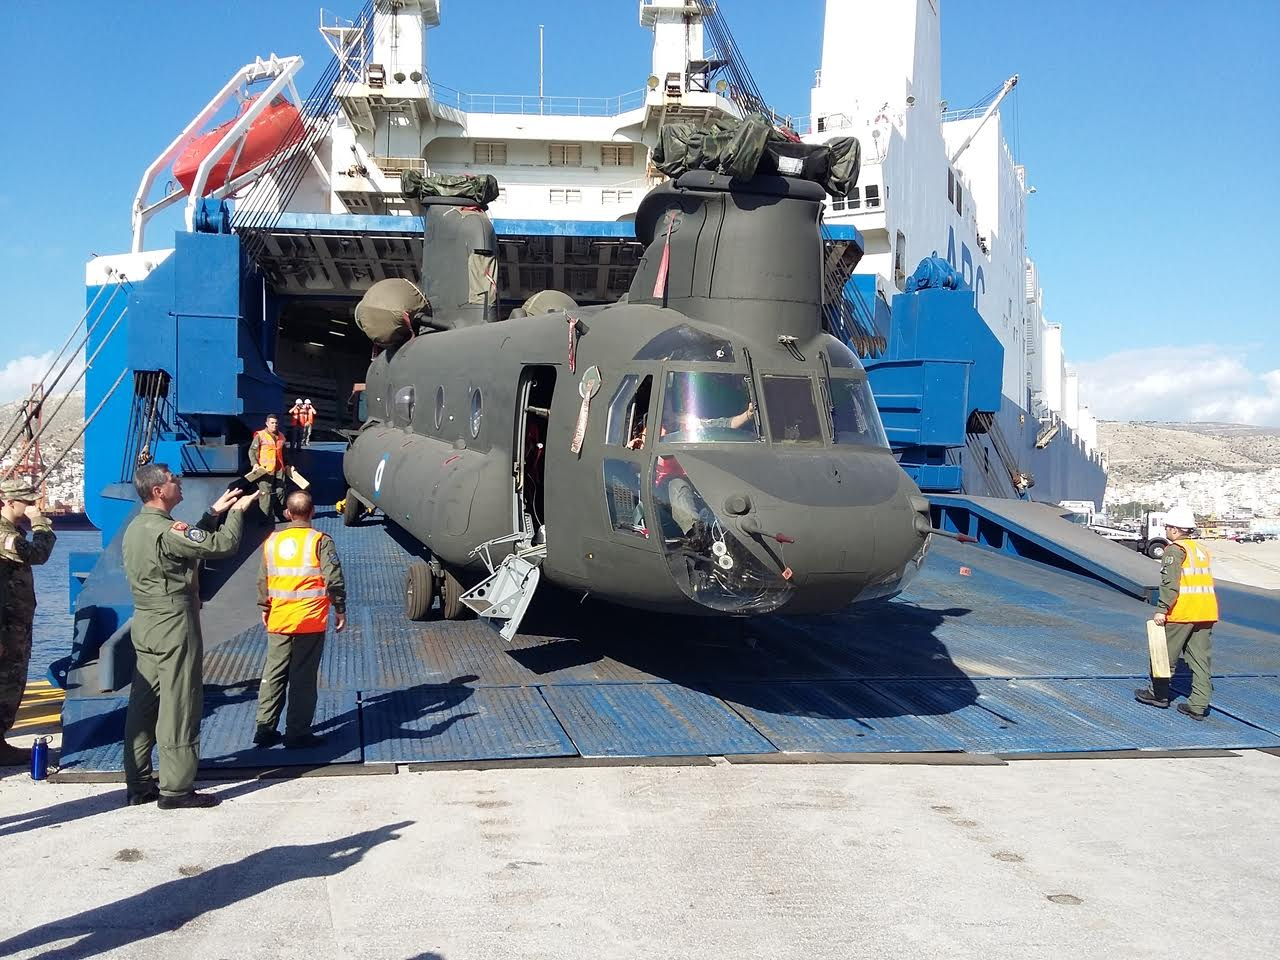 Greece receives first CH-47 Chinook heavy lift helicopters